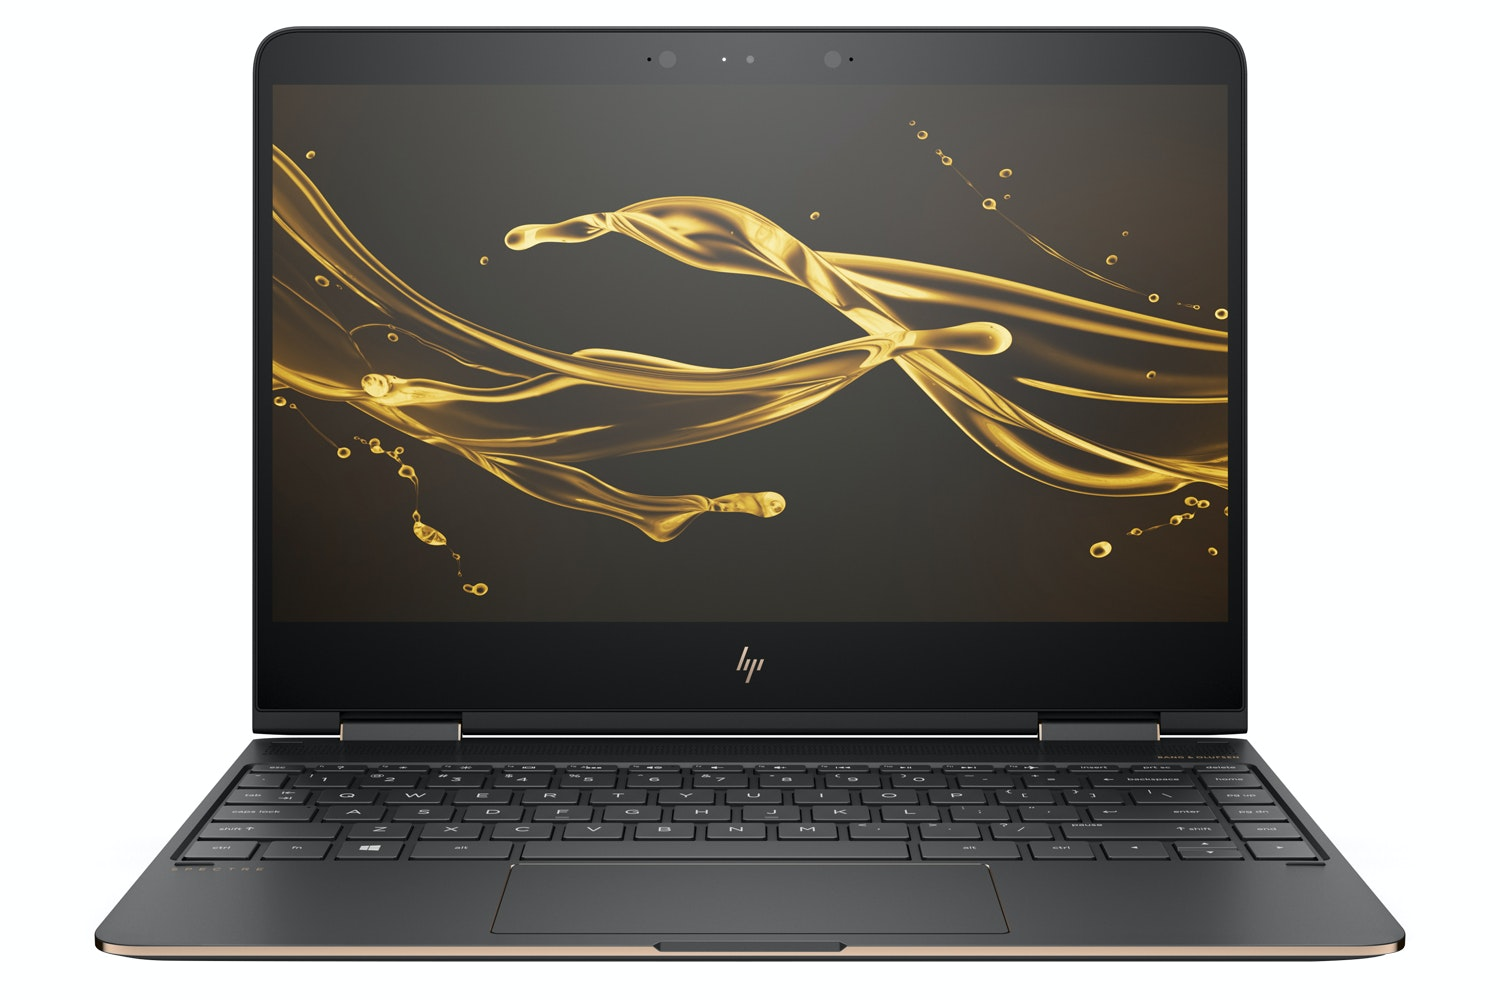 Hp Spectre X360 Core I7 8gb 512gb Ireland